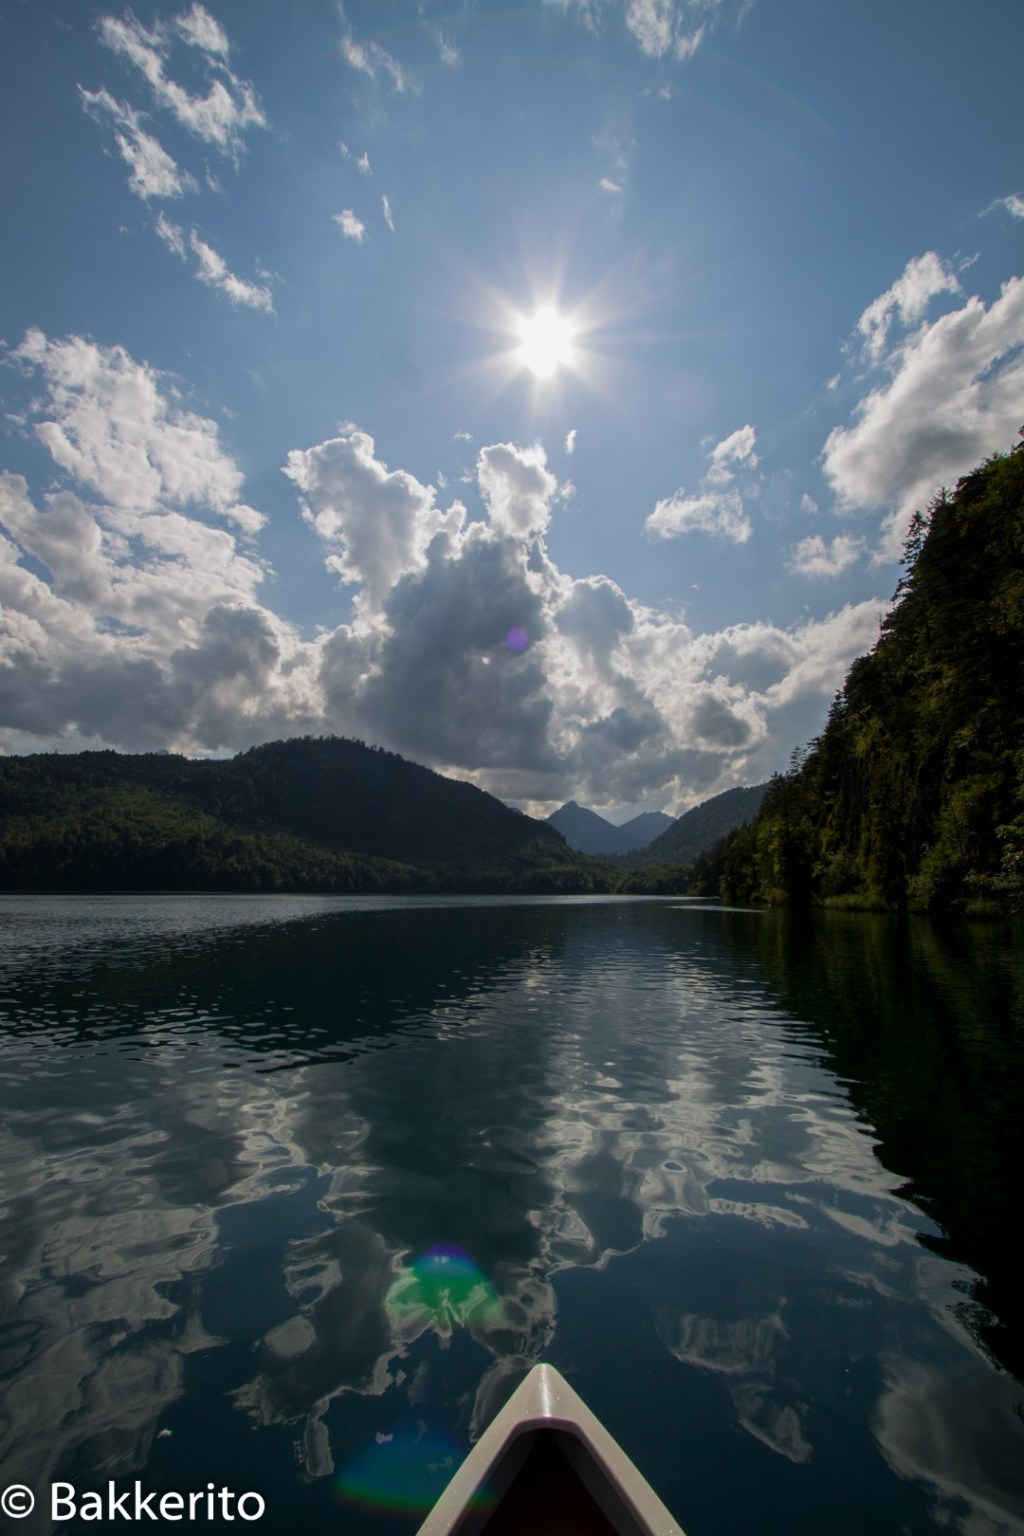 A view from the Alpsee